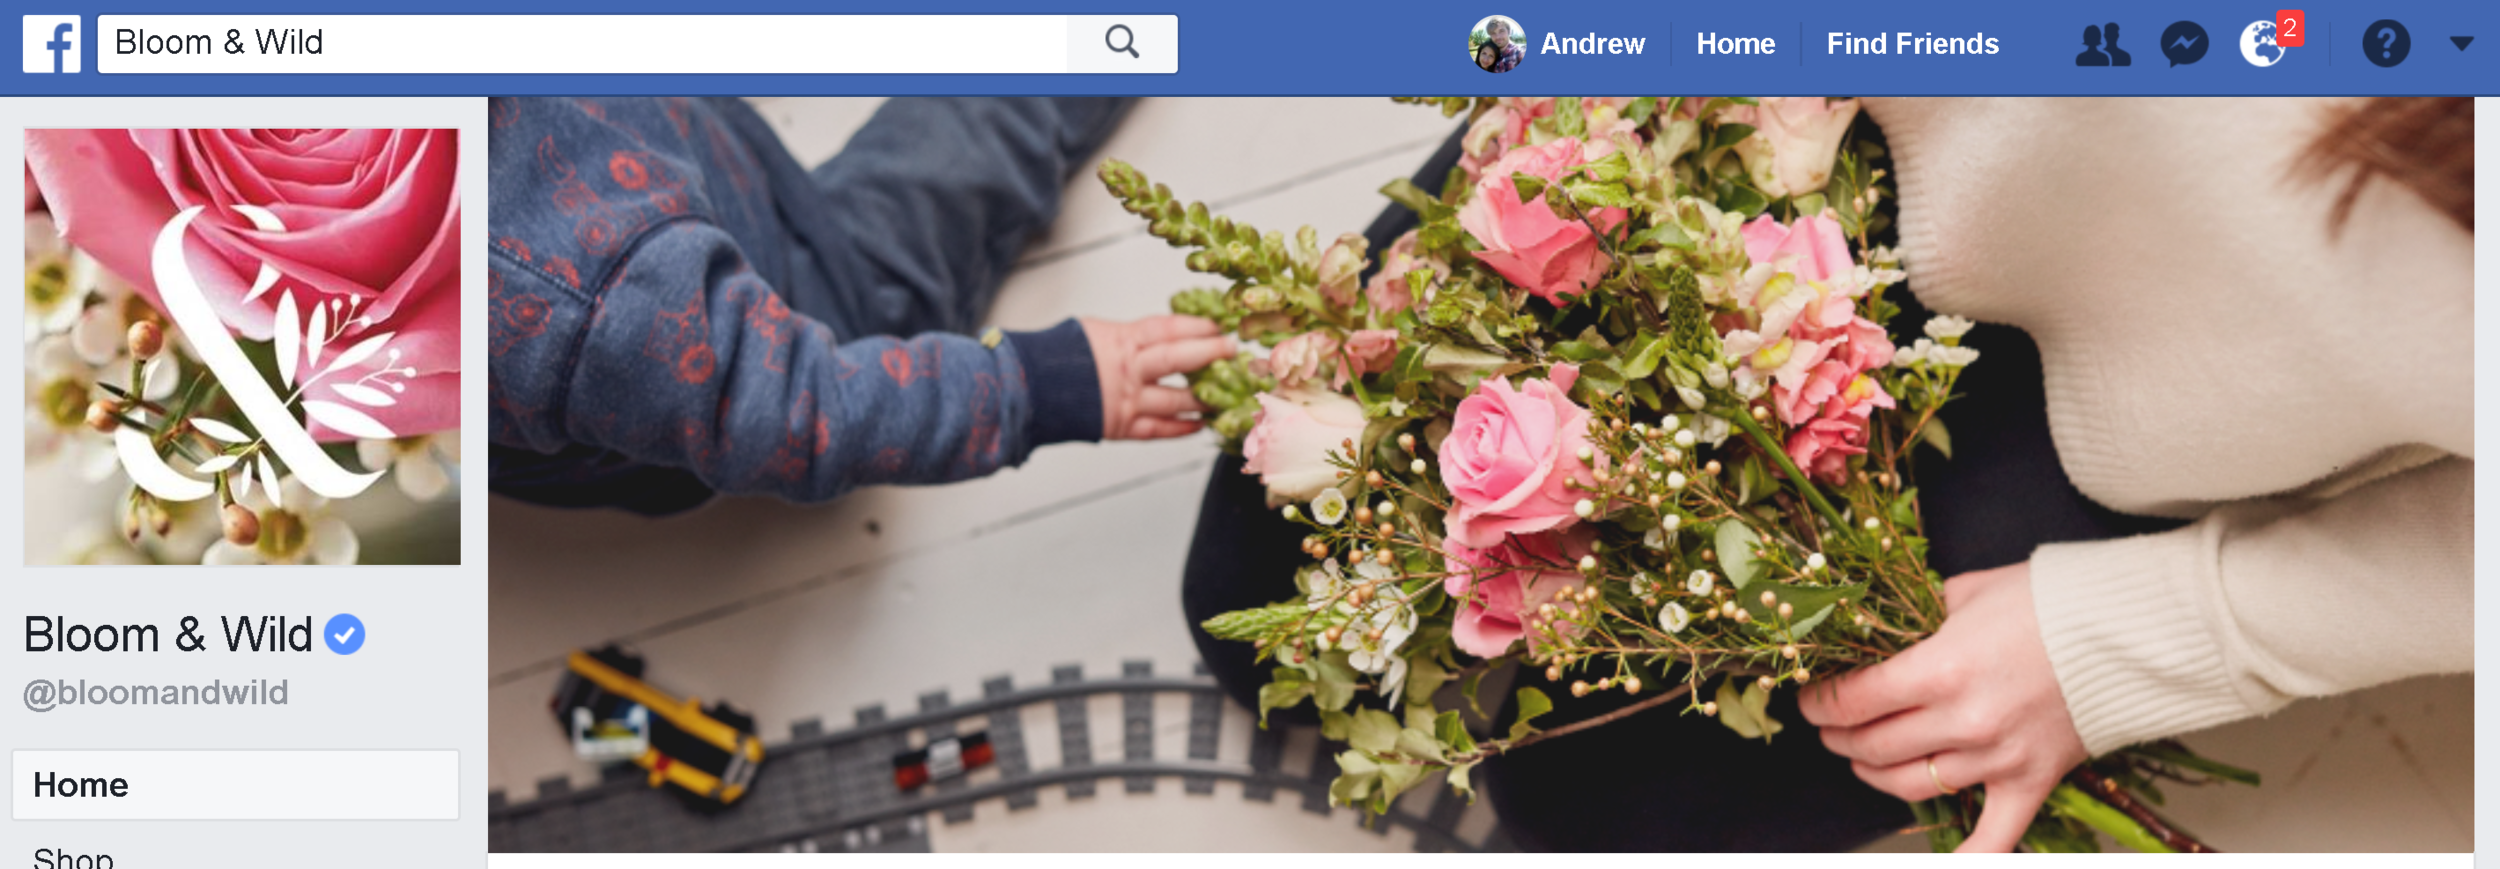 bloom-wild-facebook-cover.PNG